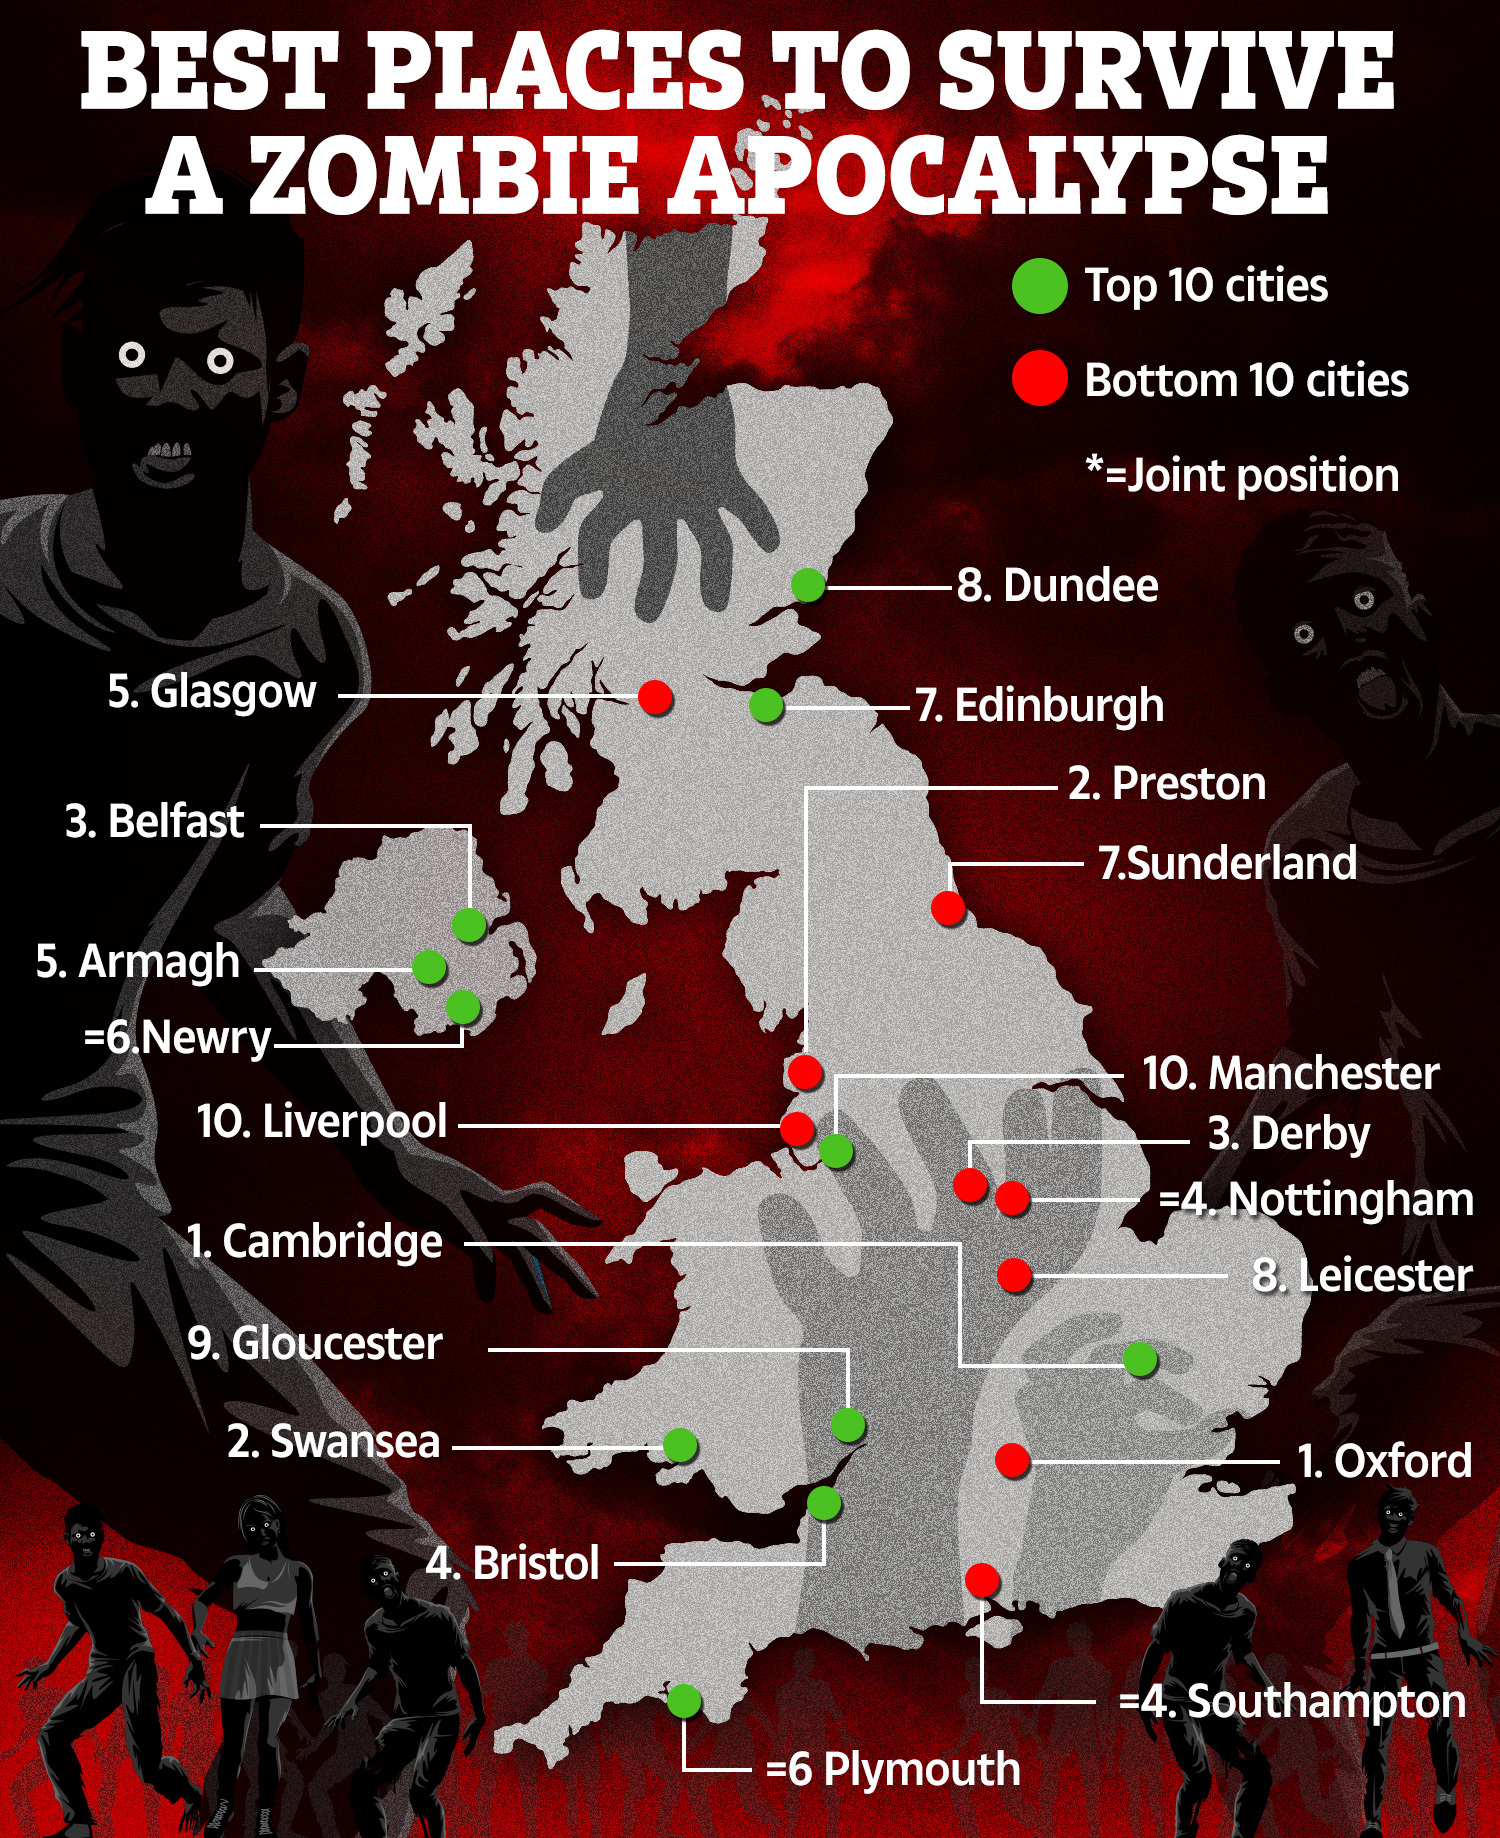 How to survive a zombie apocolpyse in England